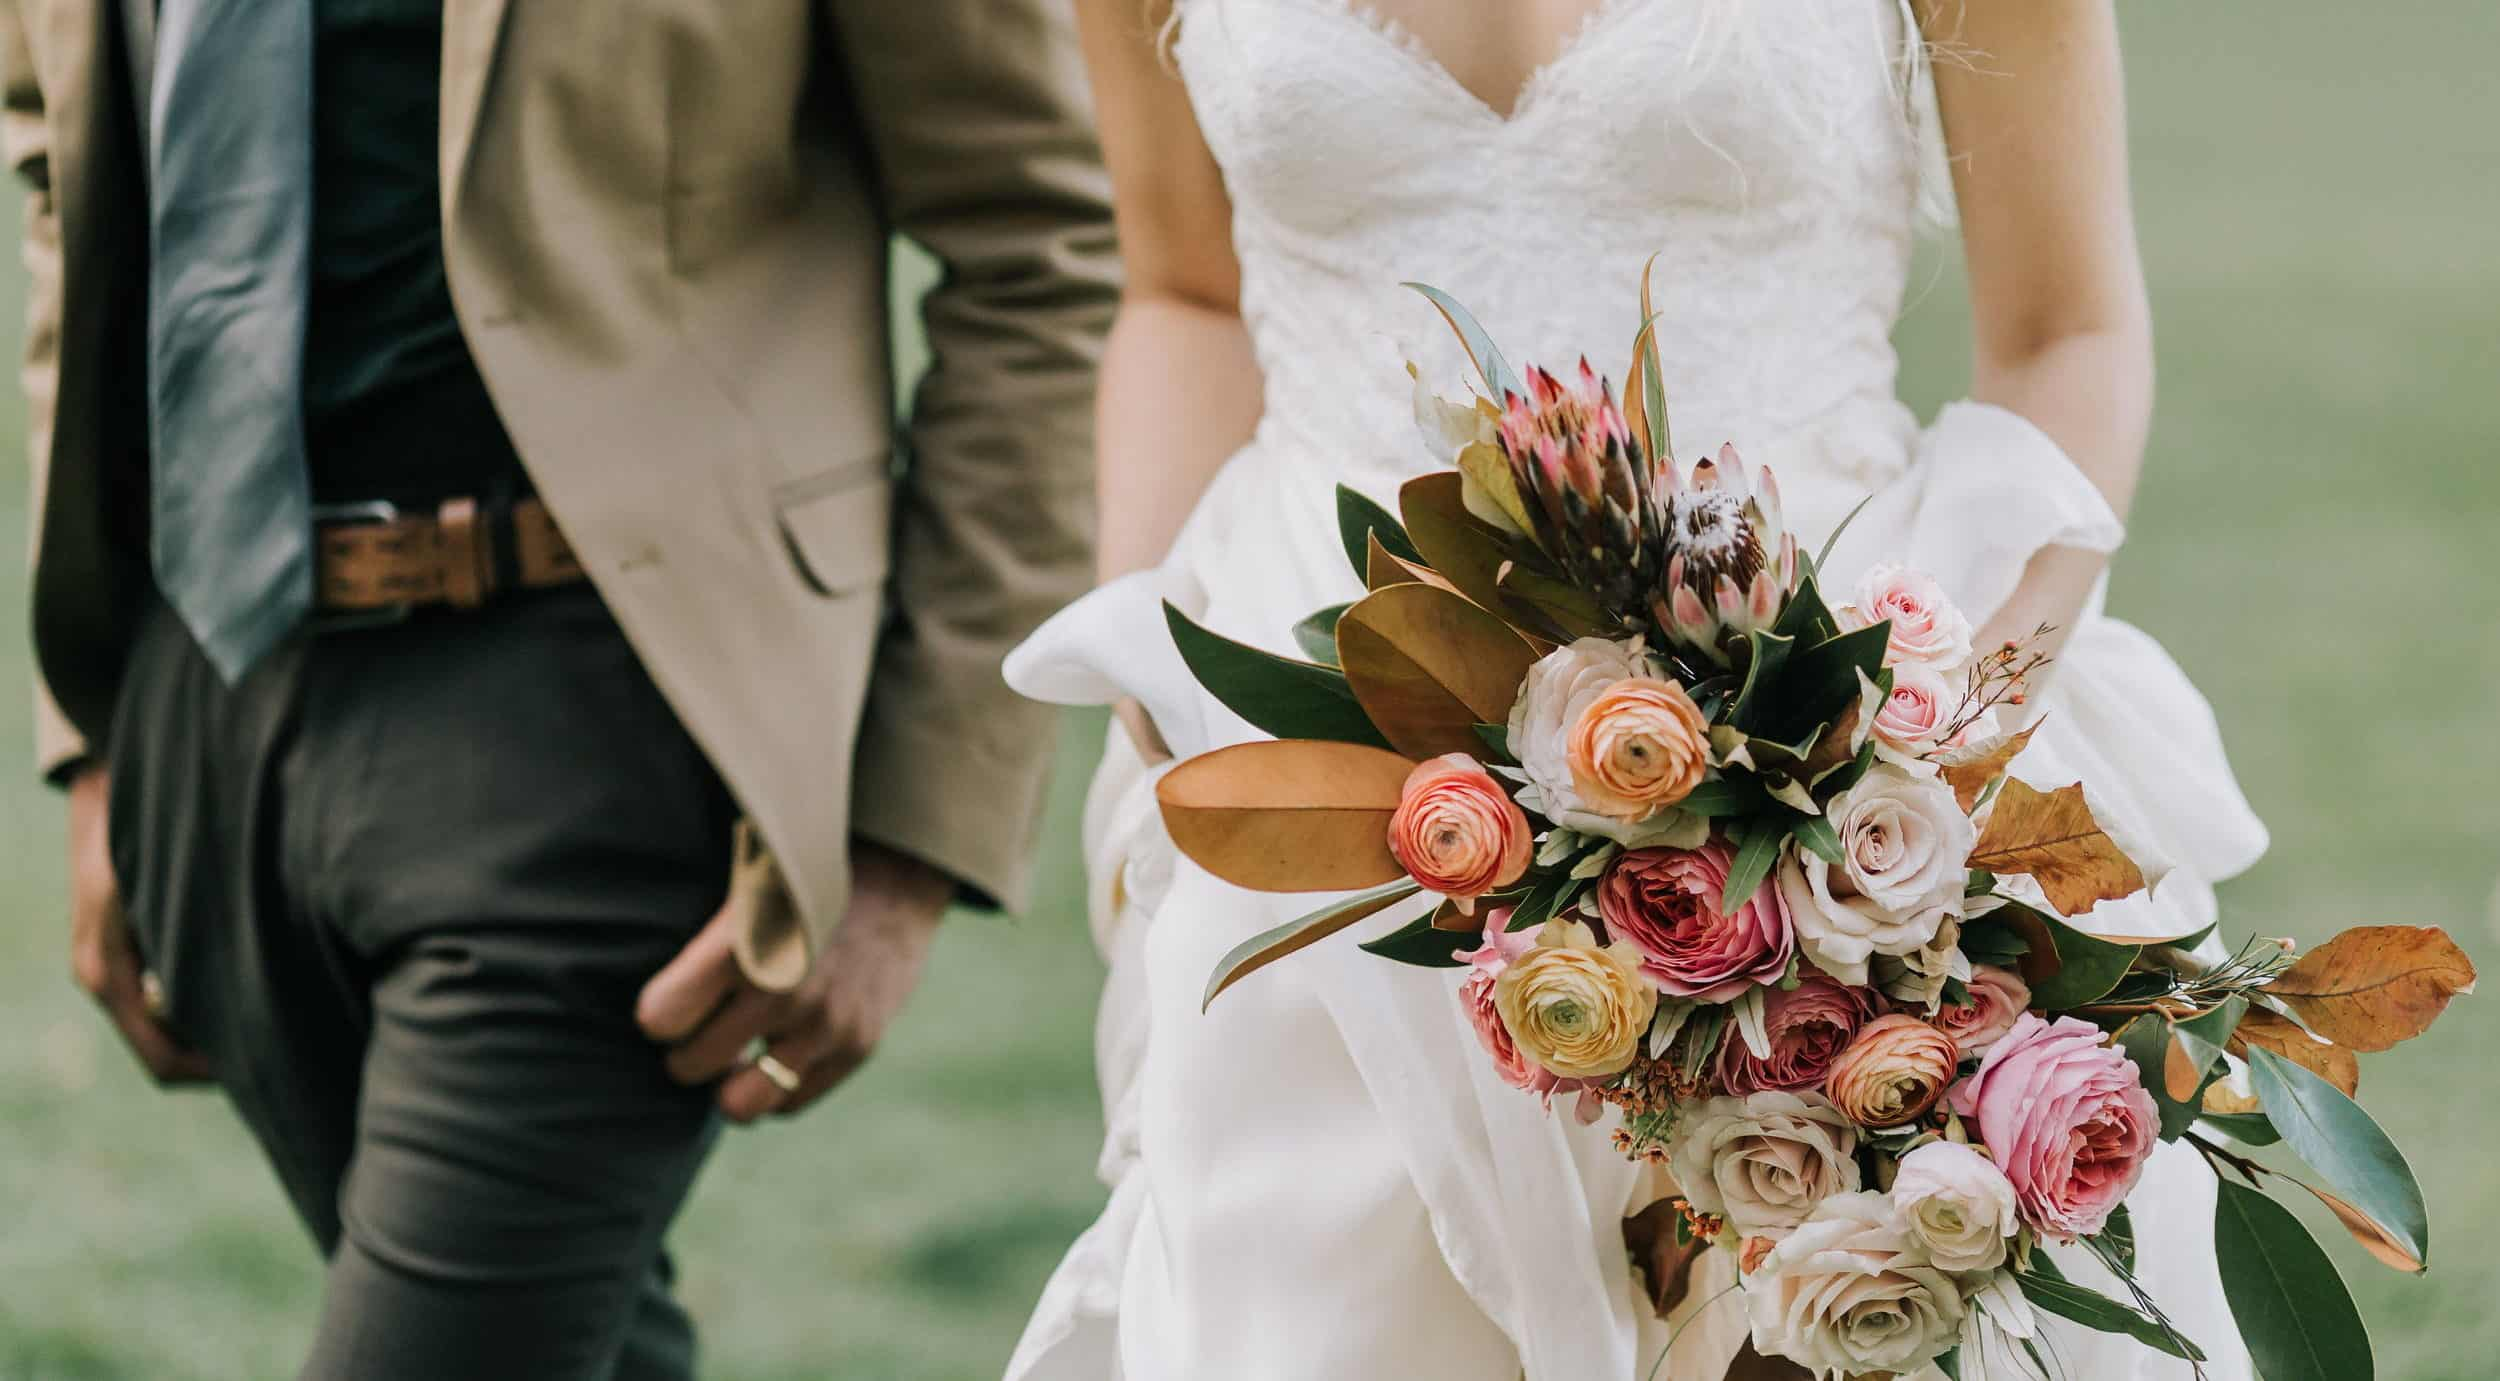 groom and bride with a wedding bouquet